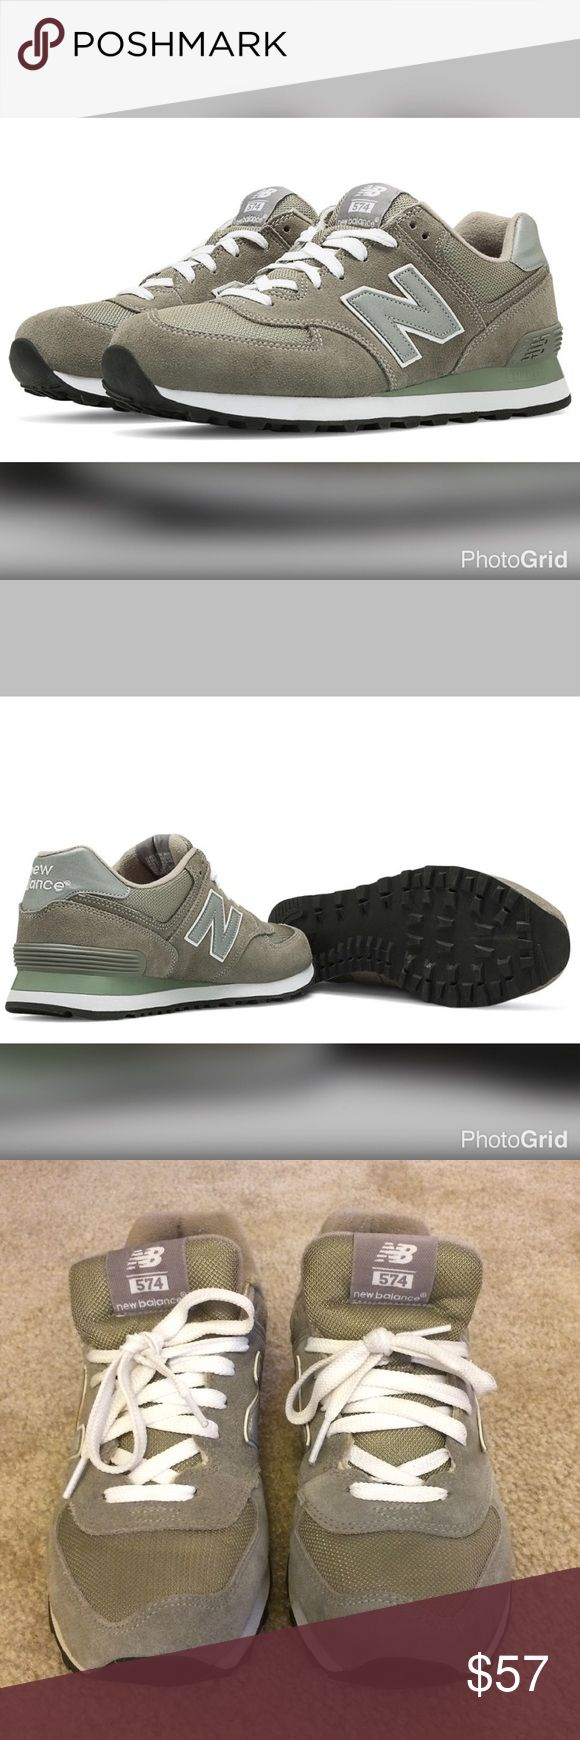 Unused Men's New Balance 574 Core Grey Sneakers Men's New Balance 574 Core Grey Sneakers Size 8.5W (they are true to size) ENCAP® midsole technology provides support and maximum durability. EVA (Ethyl Vinyl Acetate) foam midsole for cushioning. Solid rubber outsole. Suede/mesh upper. Unused. New Balance Shoes Sneakers